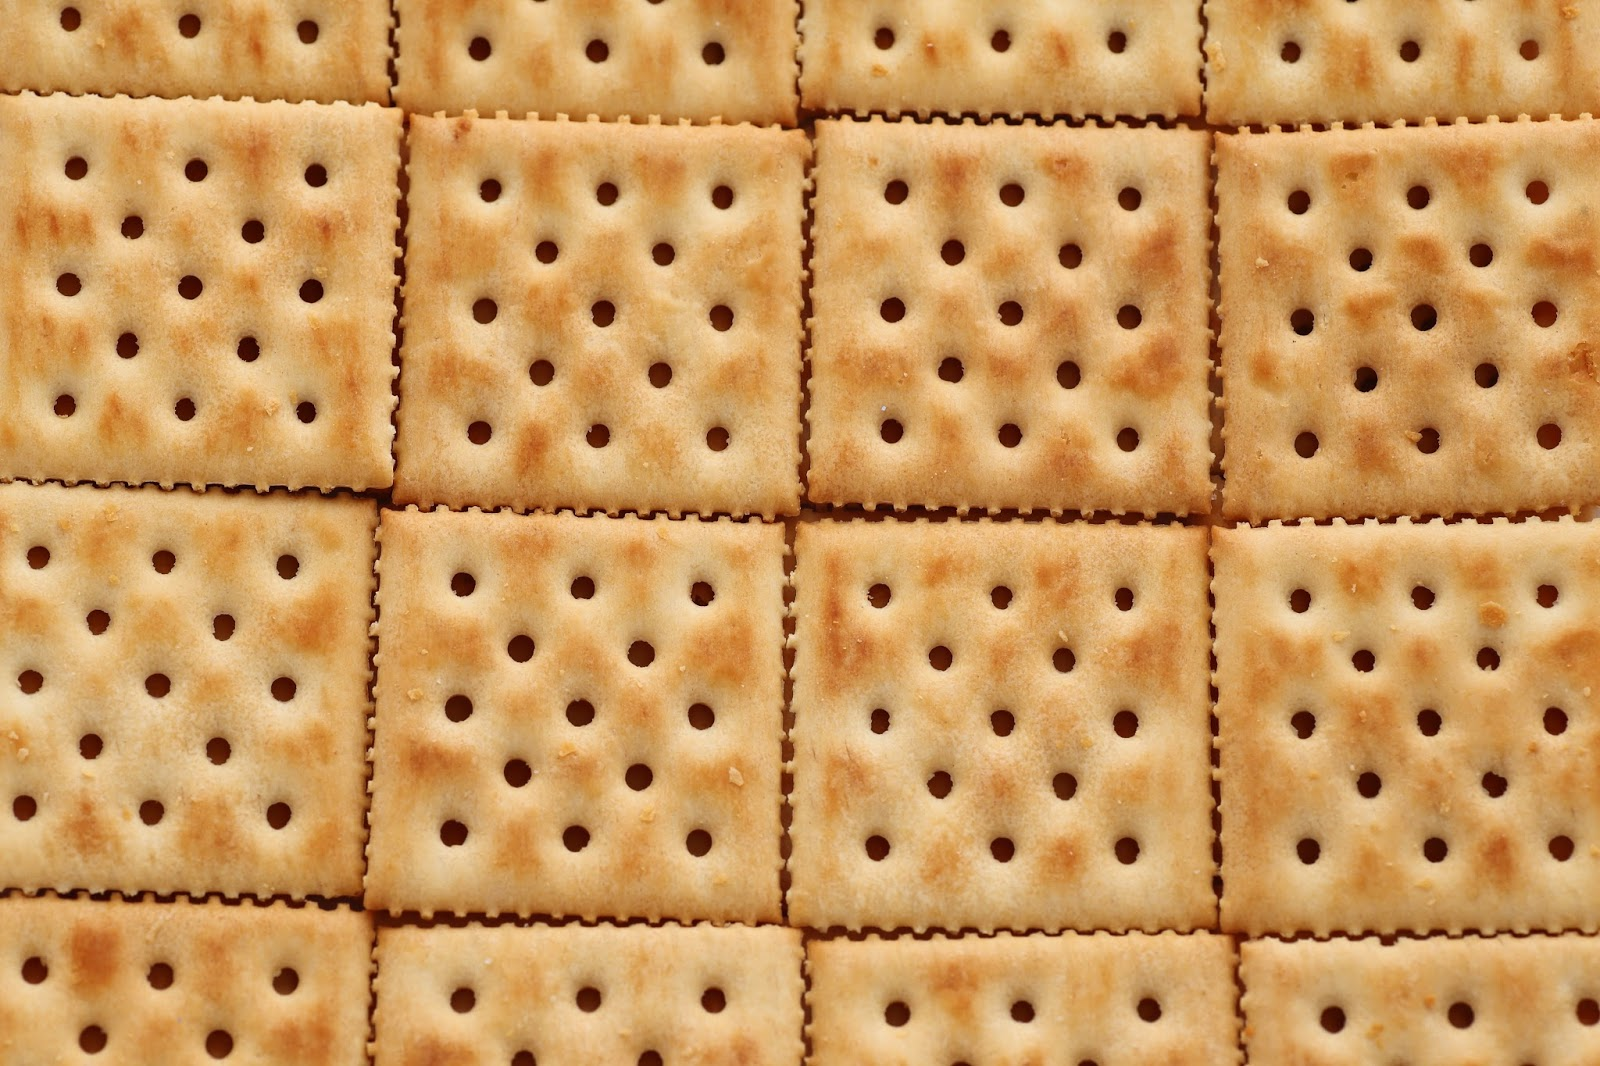 Fractions And Food: Make Fractions Familiar Kids Have Been Working With  Fractions Their Entire Lives